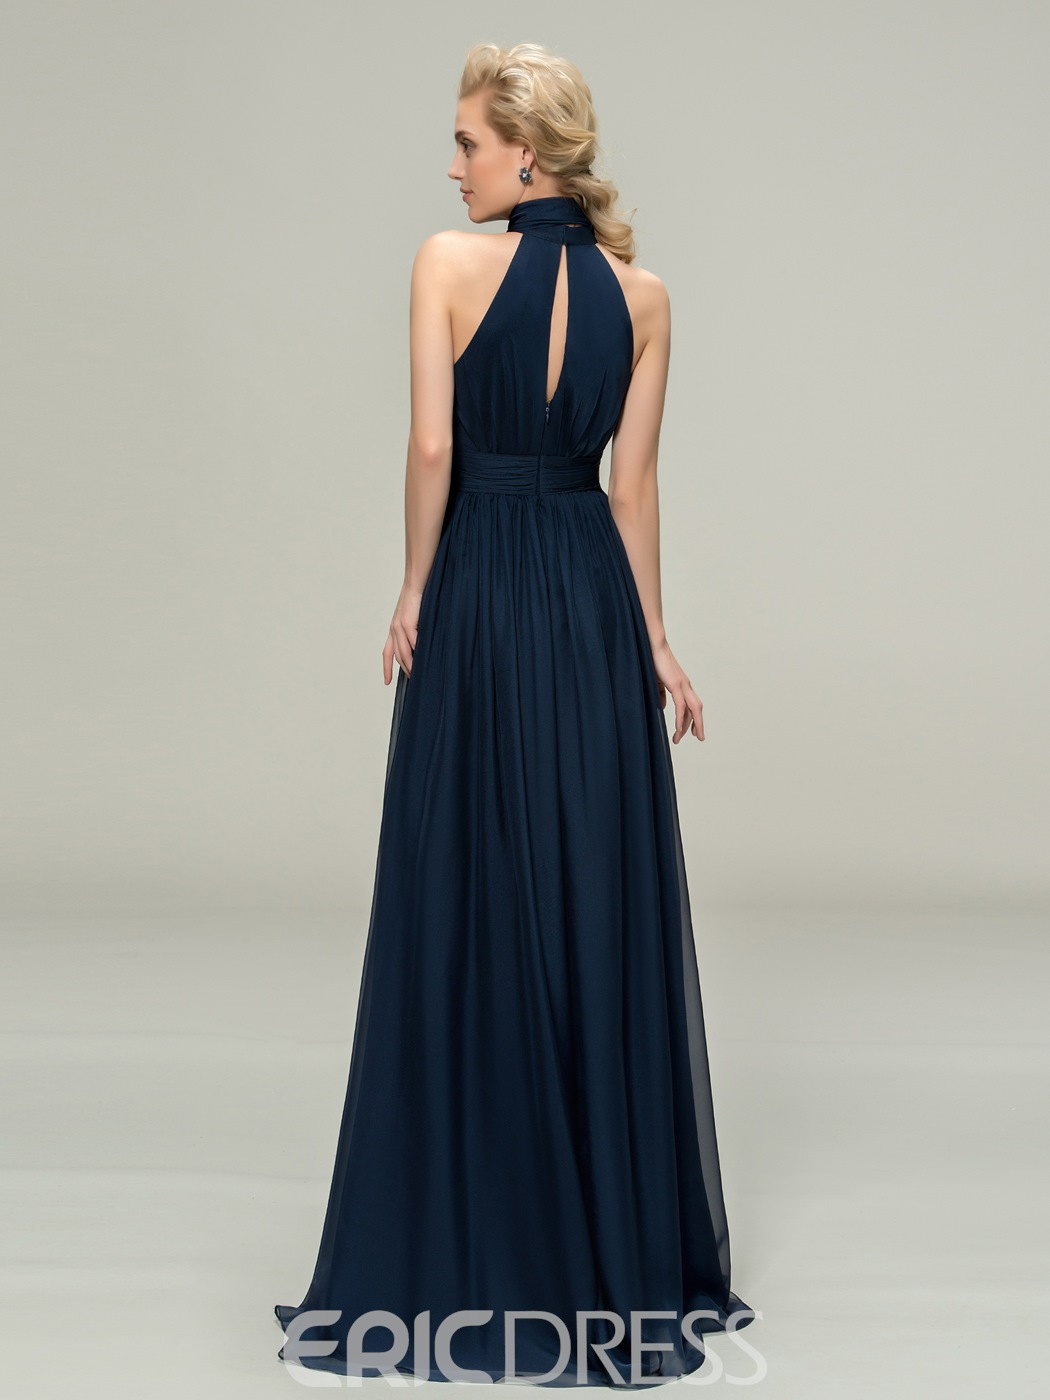 Classy High Neck Sleeveless A-Line Long Bridesmaid Dress